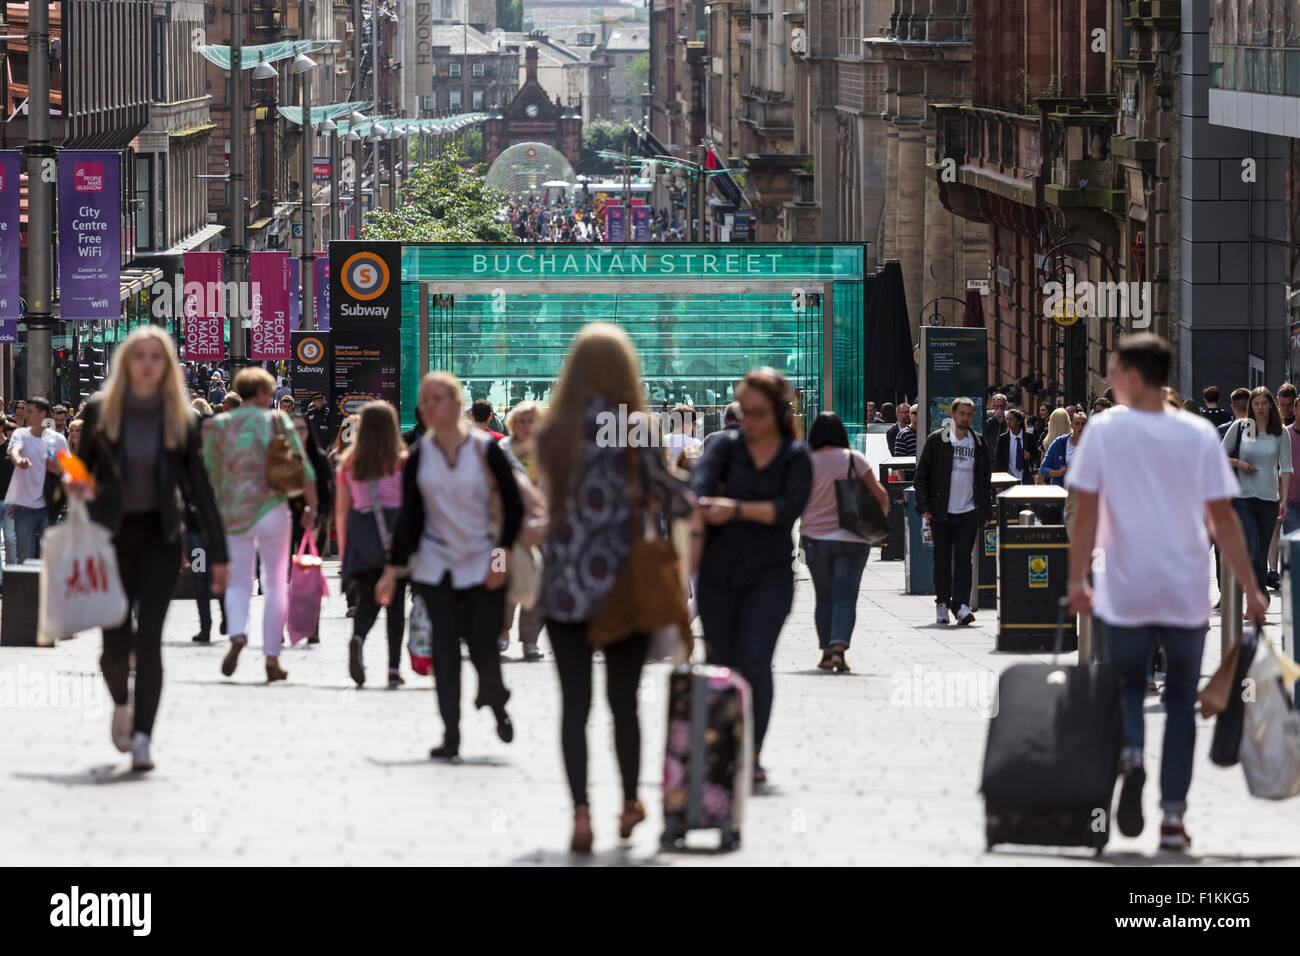 View looking South down Buchanan Street in Glasgow city centre, Scotland, UK - Stock Image